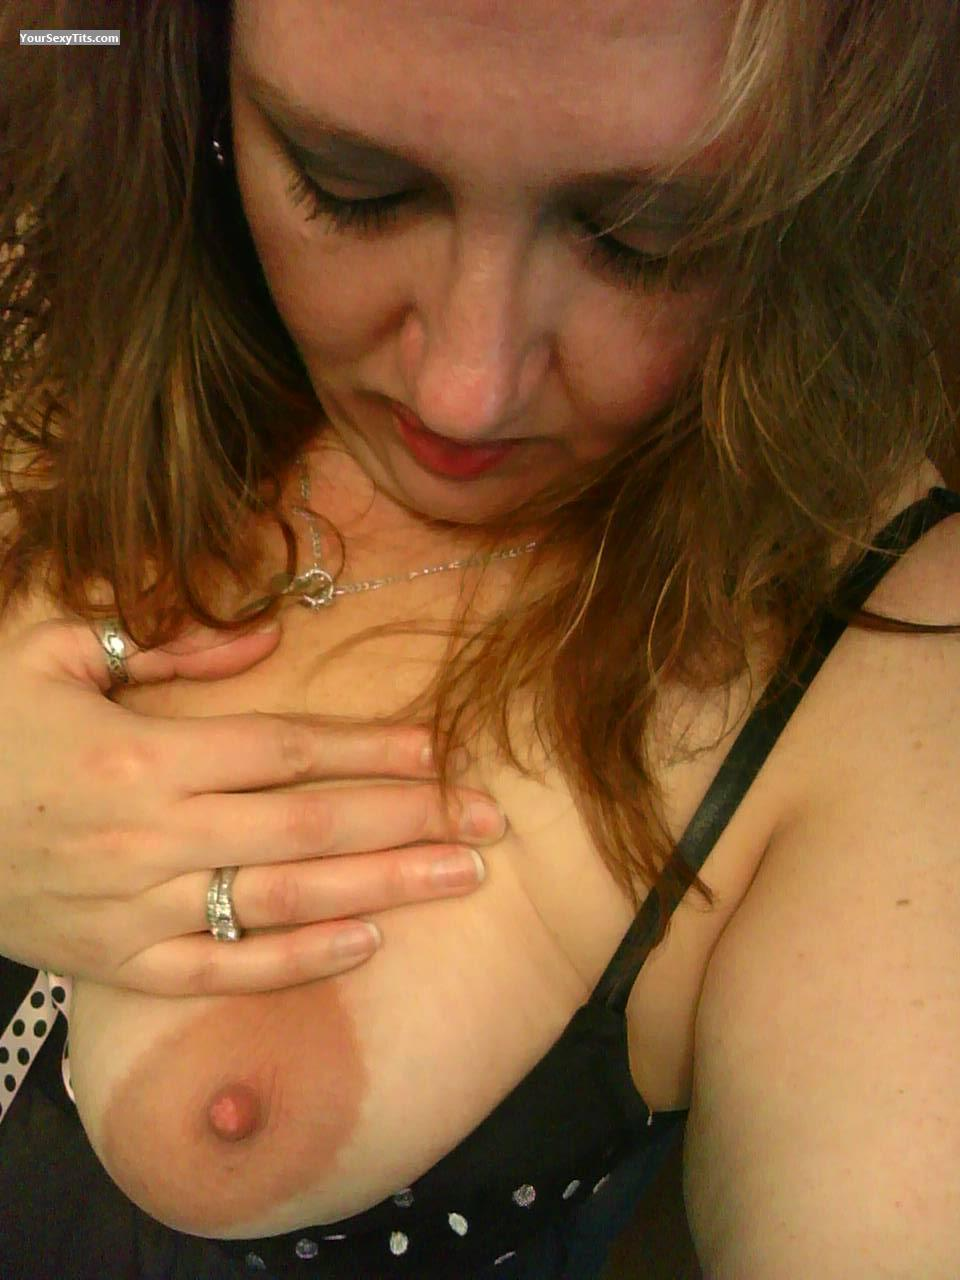 My Very big Tits Topless Selfie by Lady Of The Night